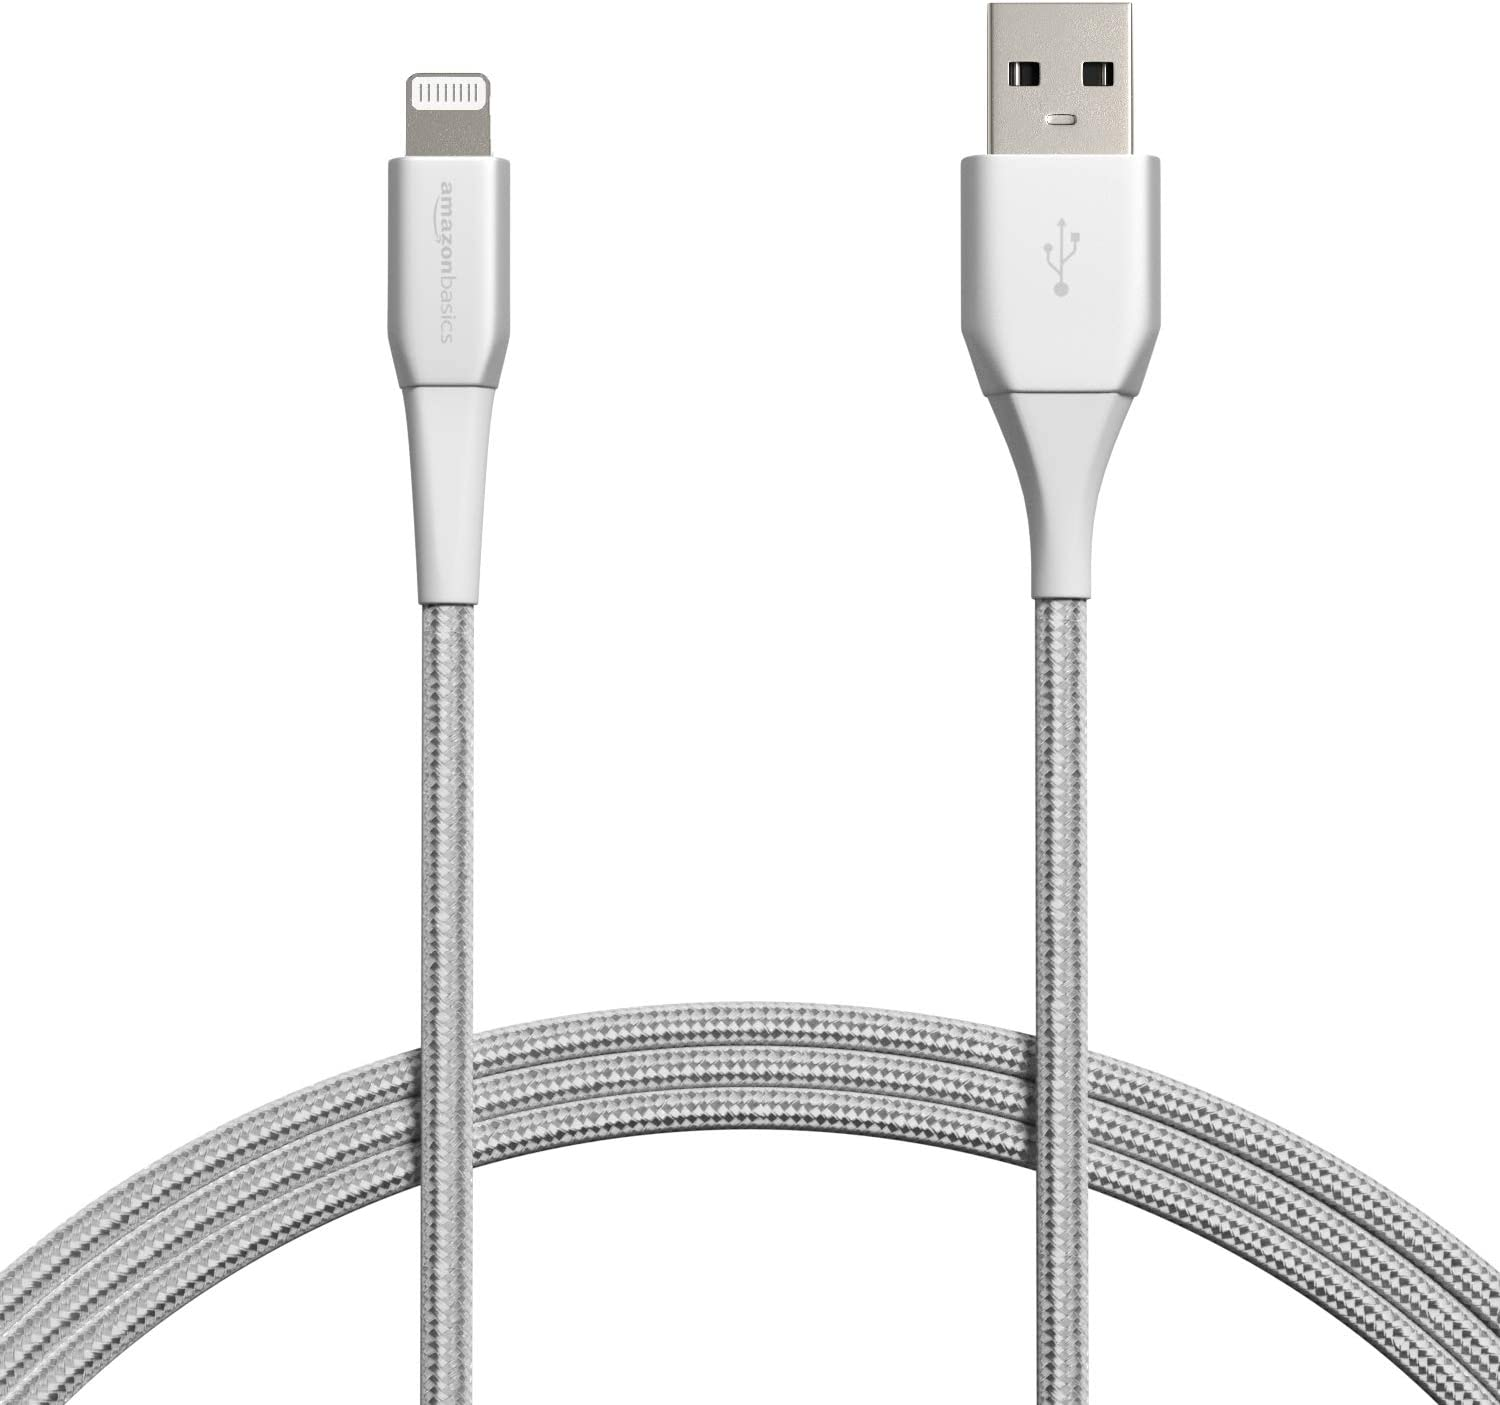 AmazonBasics Premium Double Nylon Braided Lightning to USB Cable - MFi Certified Apple iPhone Charger, Silver, 6-Foot (Durability Rated 20,000 Bends)